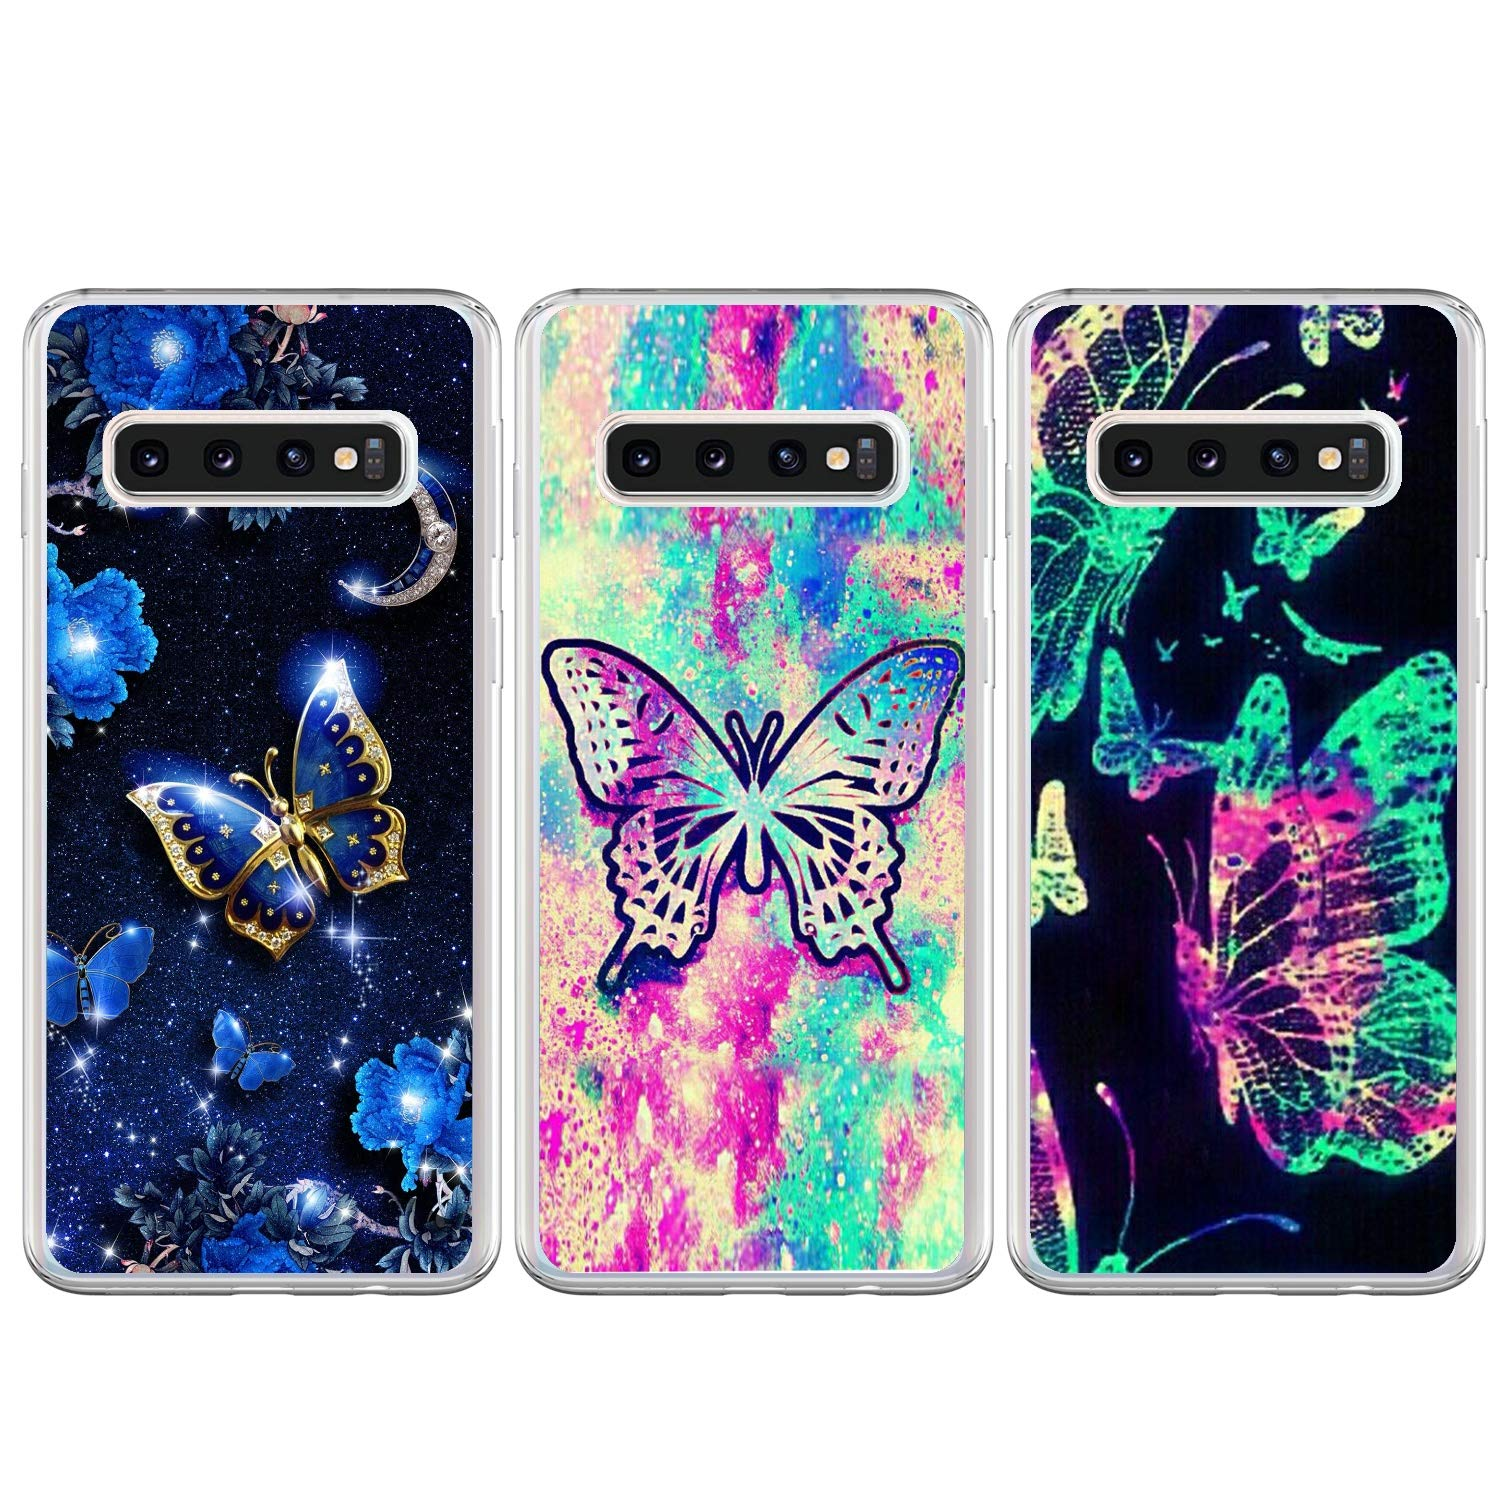 LaVibe Custodia in TPU per Samsung Galaxy S10+ Samsung S10 Plus Cover 3 x Soft Gel Rubber Bumper Shockproof Painted Pattern Cover